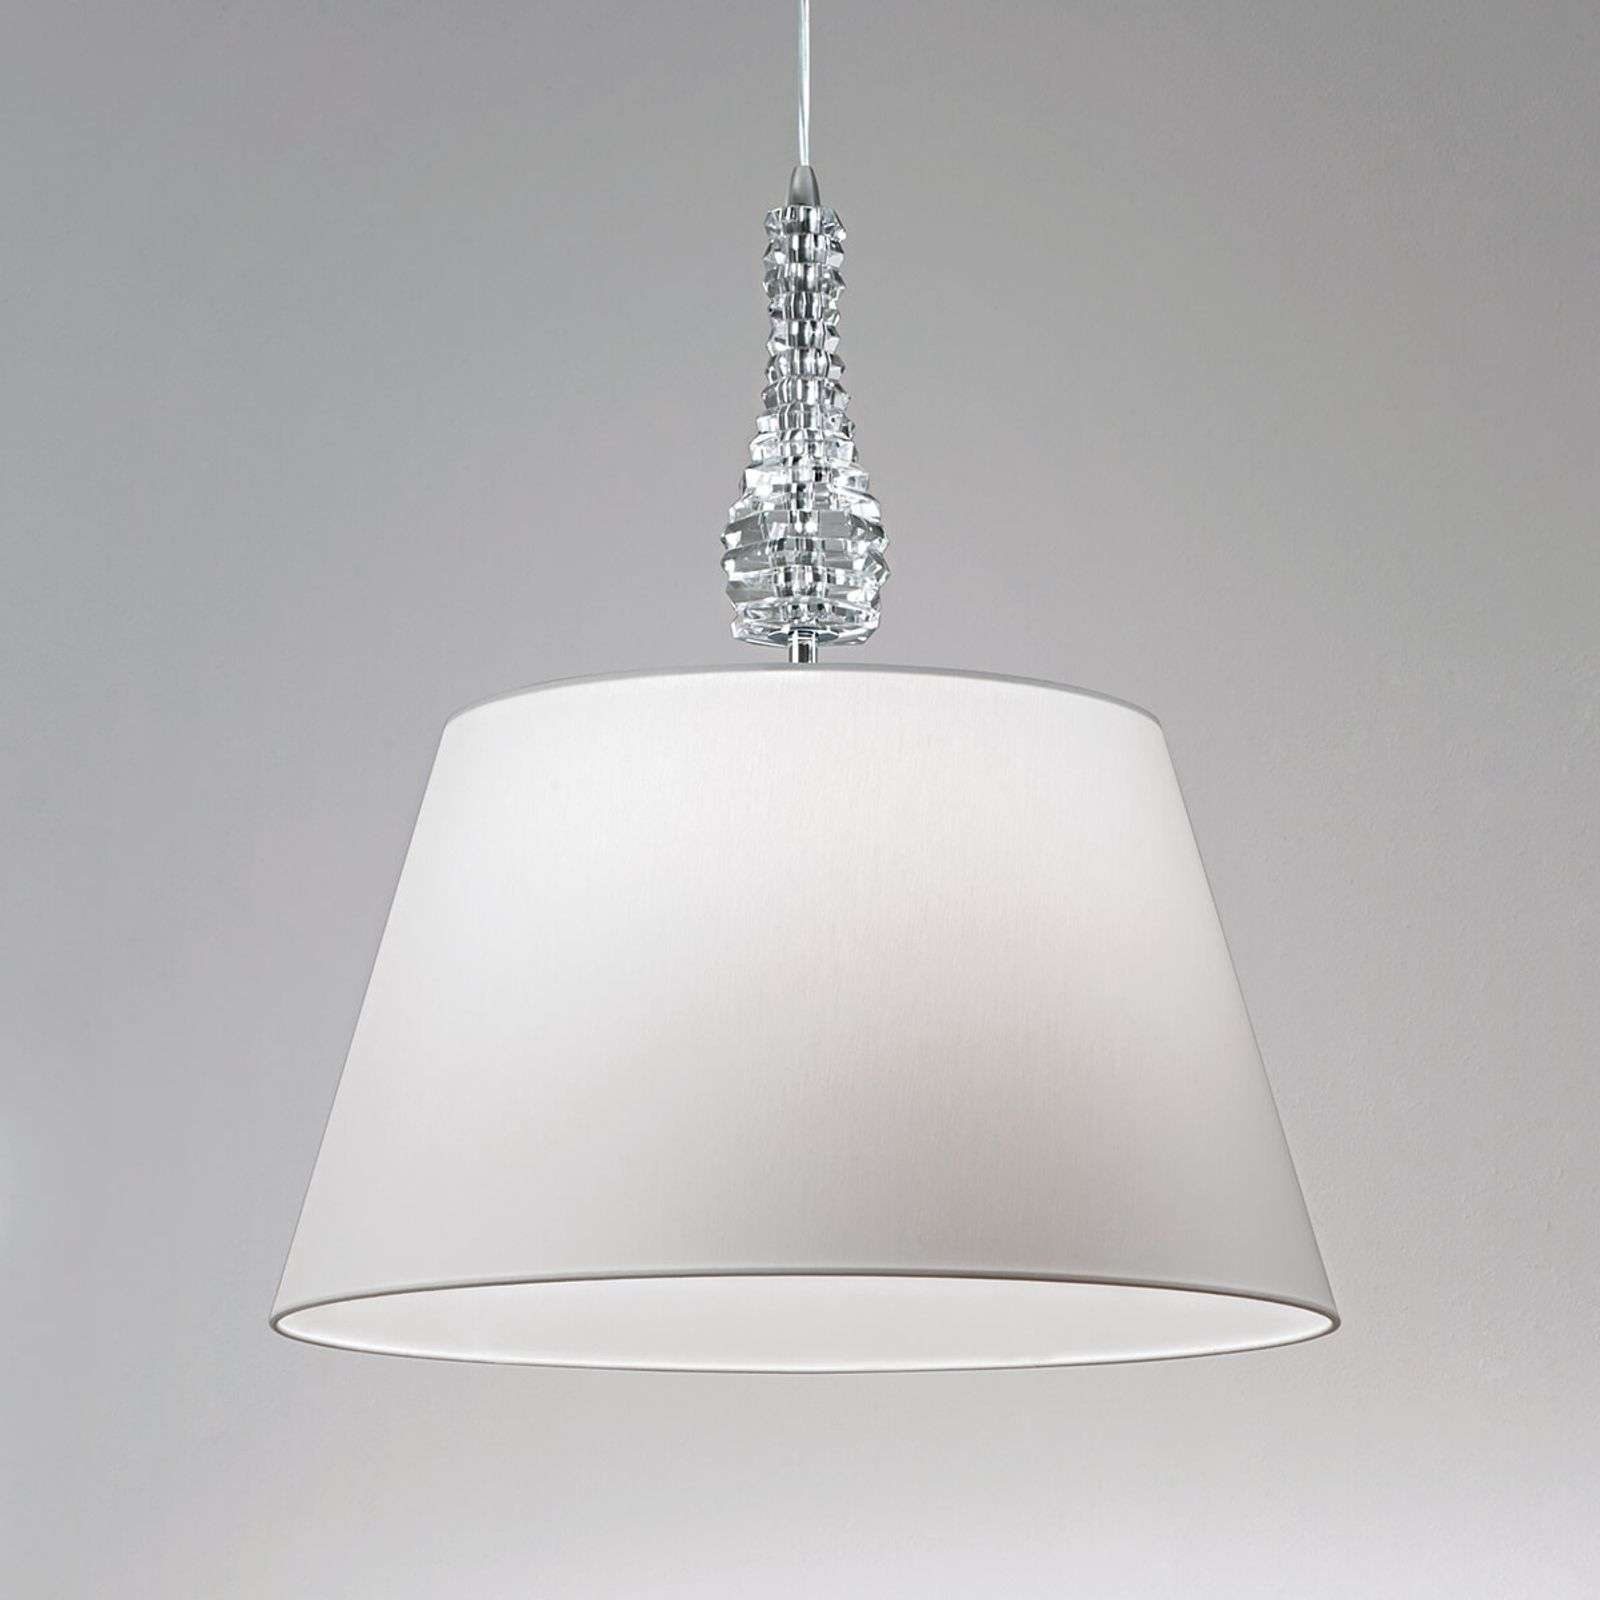 Witte hanglamp Crystal wit